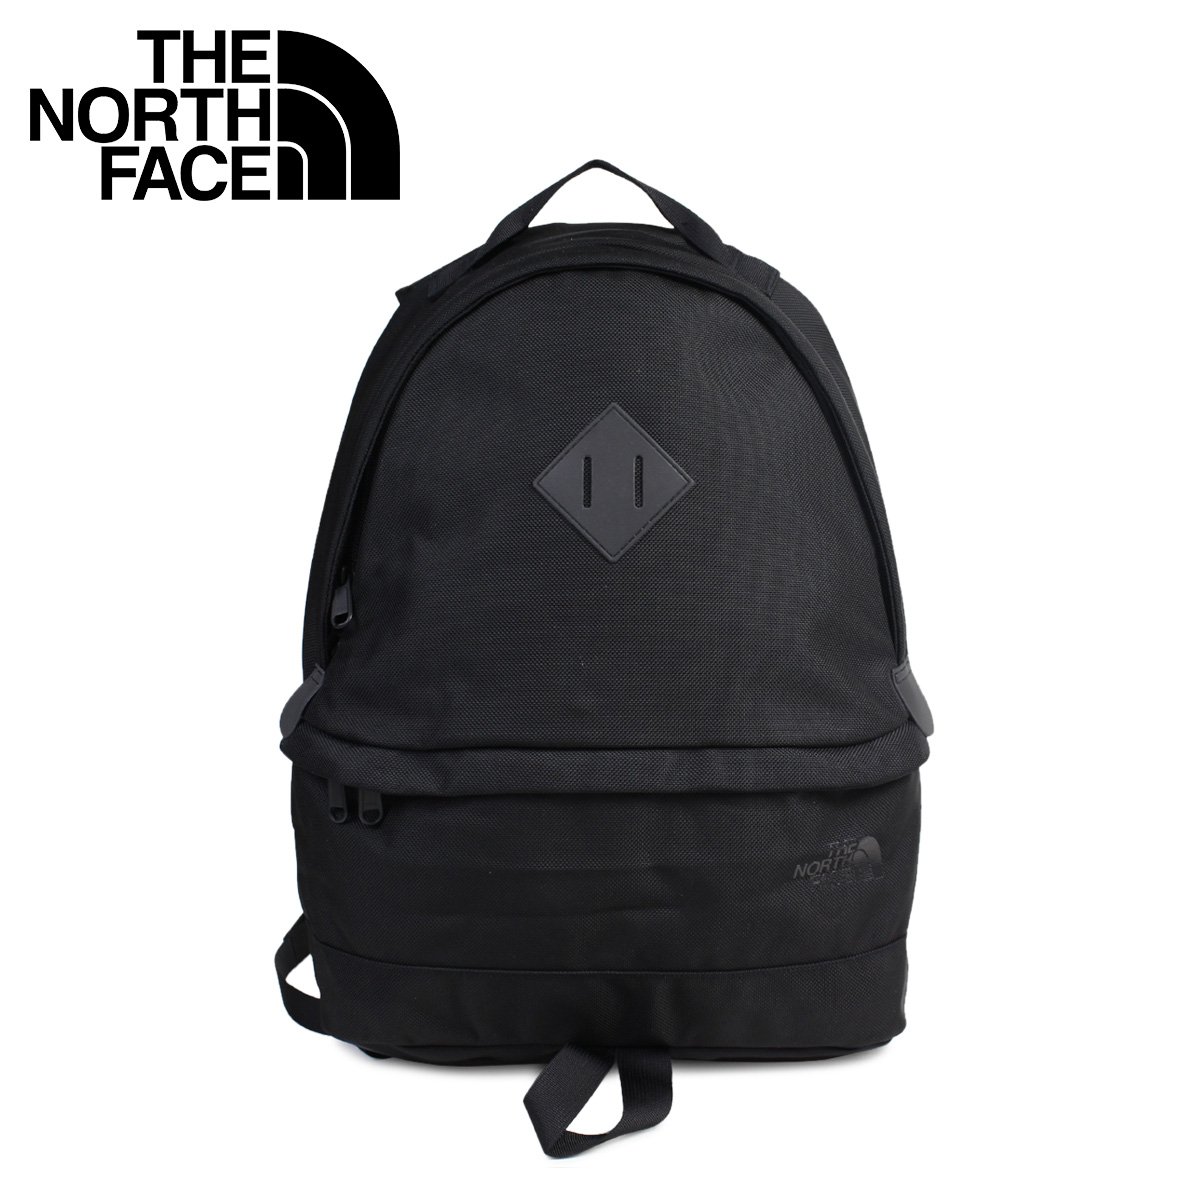 buy north face rucksack